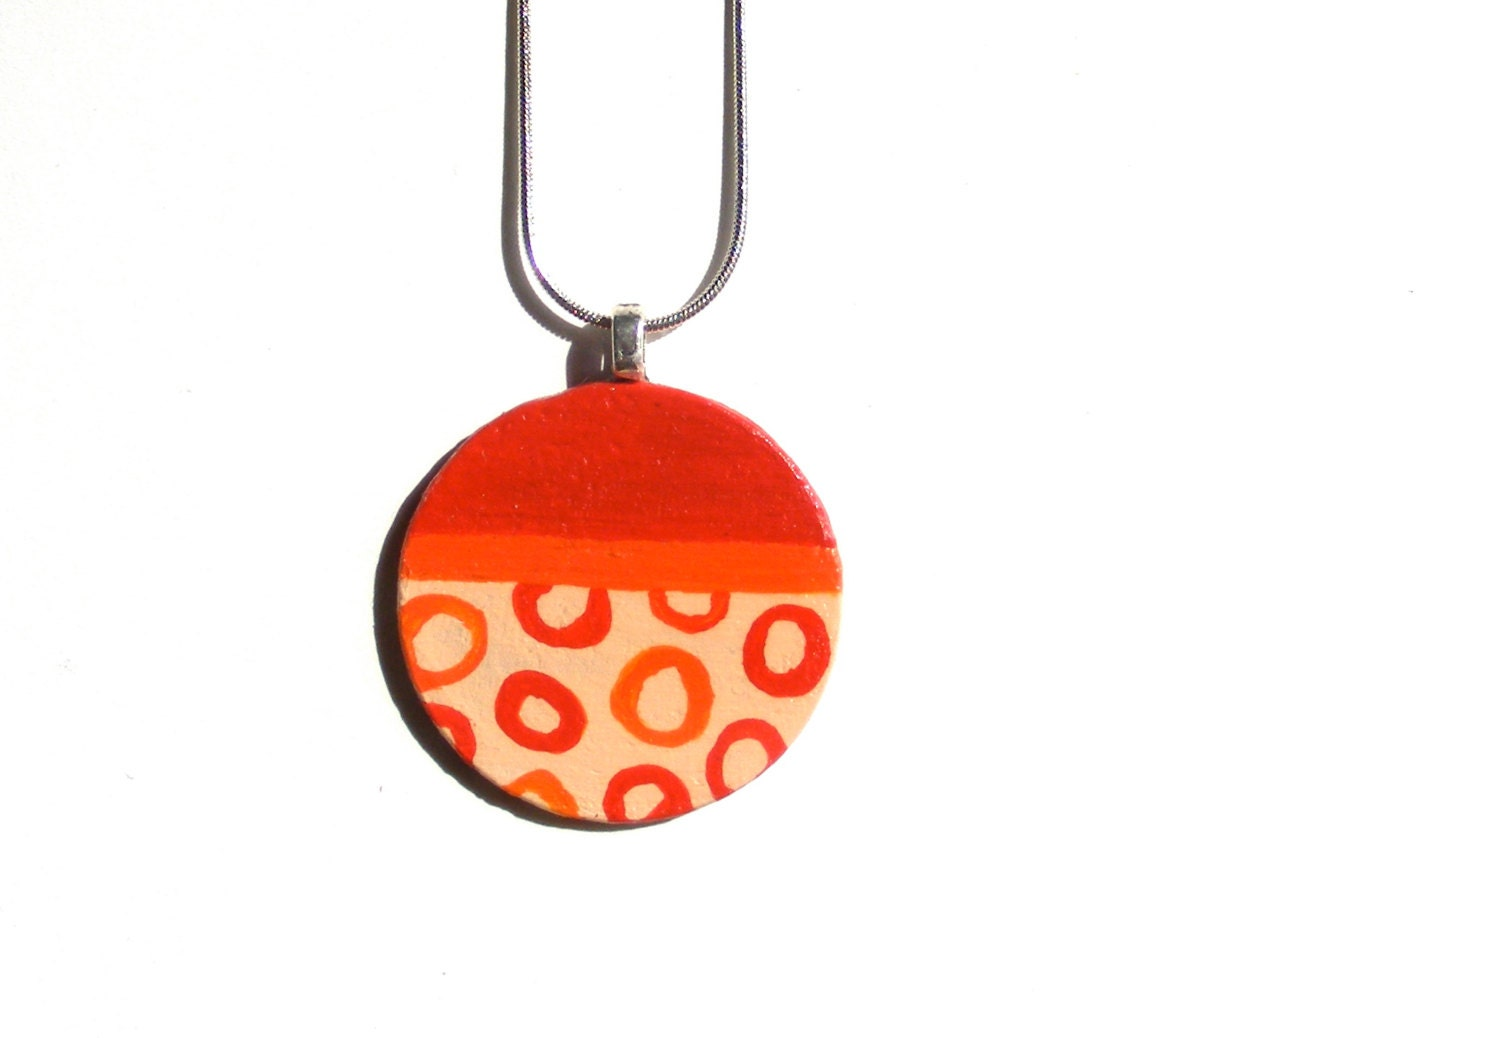 Geometric Abstract. Red. Orange. Peach Hand Painted Wooden Pendant. OOAK. 18 inch Chain. UV protected. Handmade by Calico City - calicocity